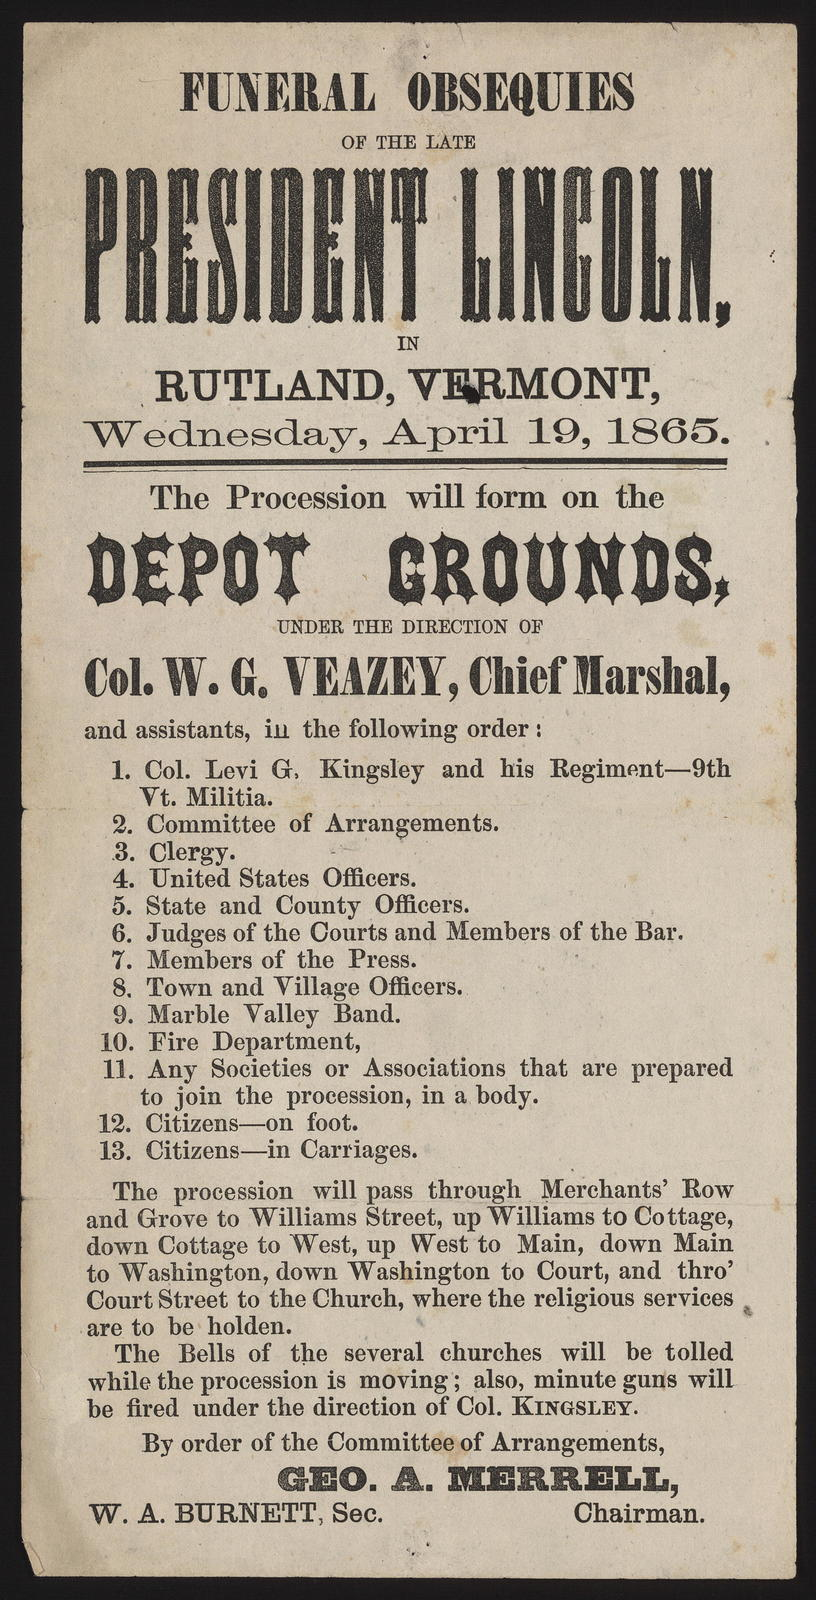 Funeral obsequies of the late President Lincoln, in Rutland Vermont, Wednesday, April 19, 1865.